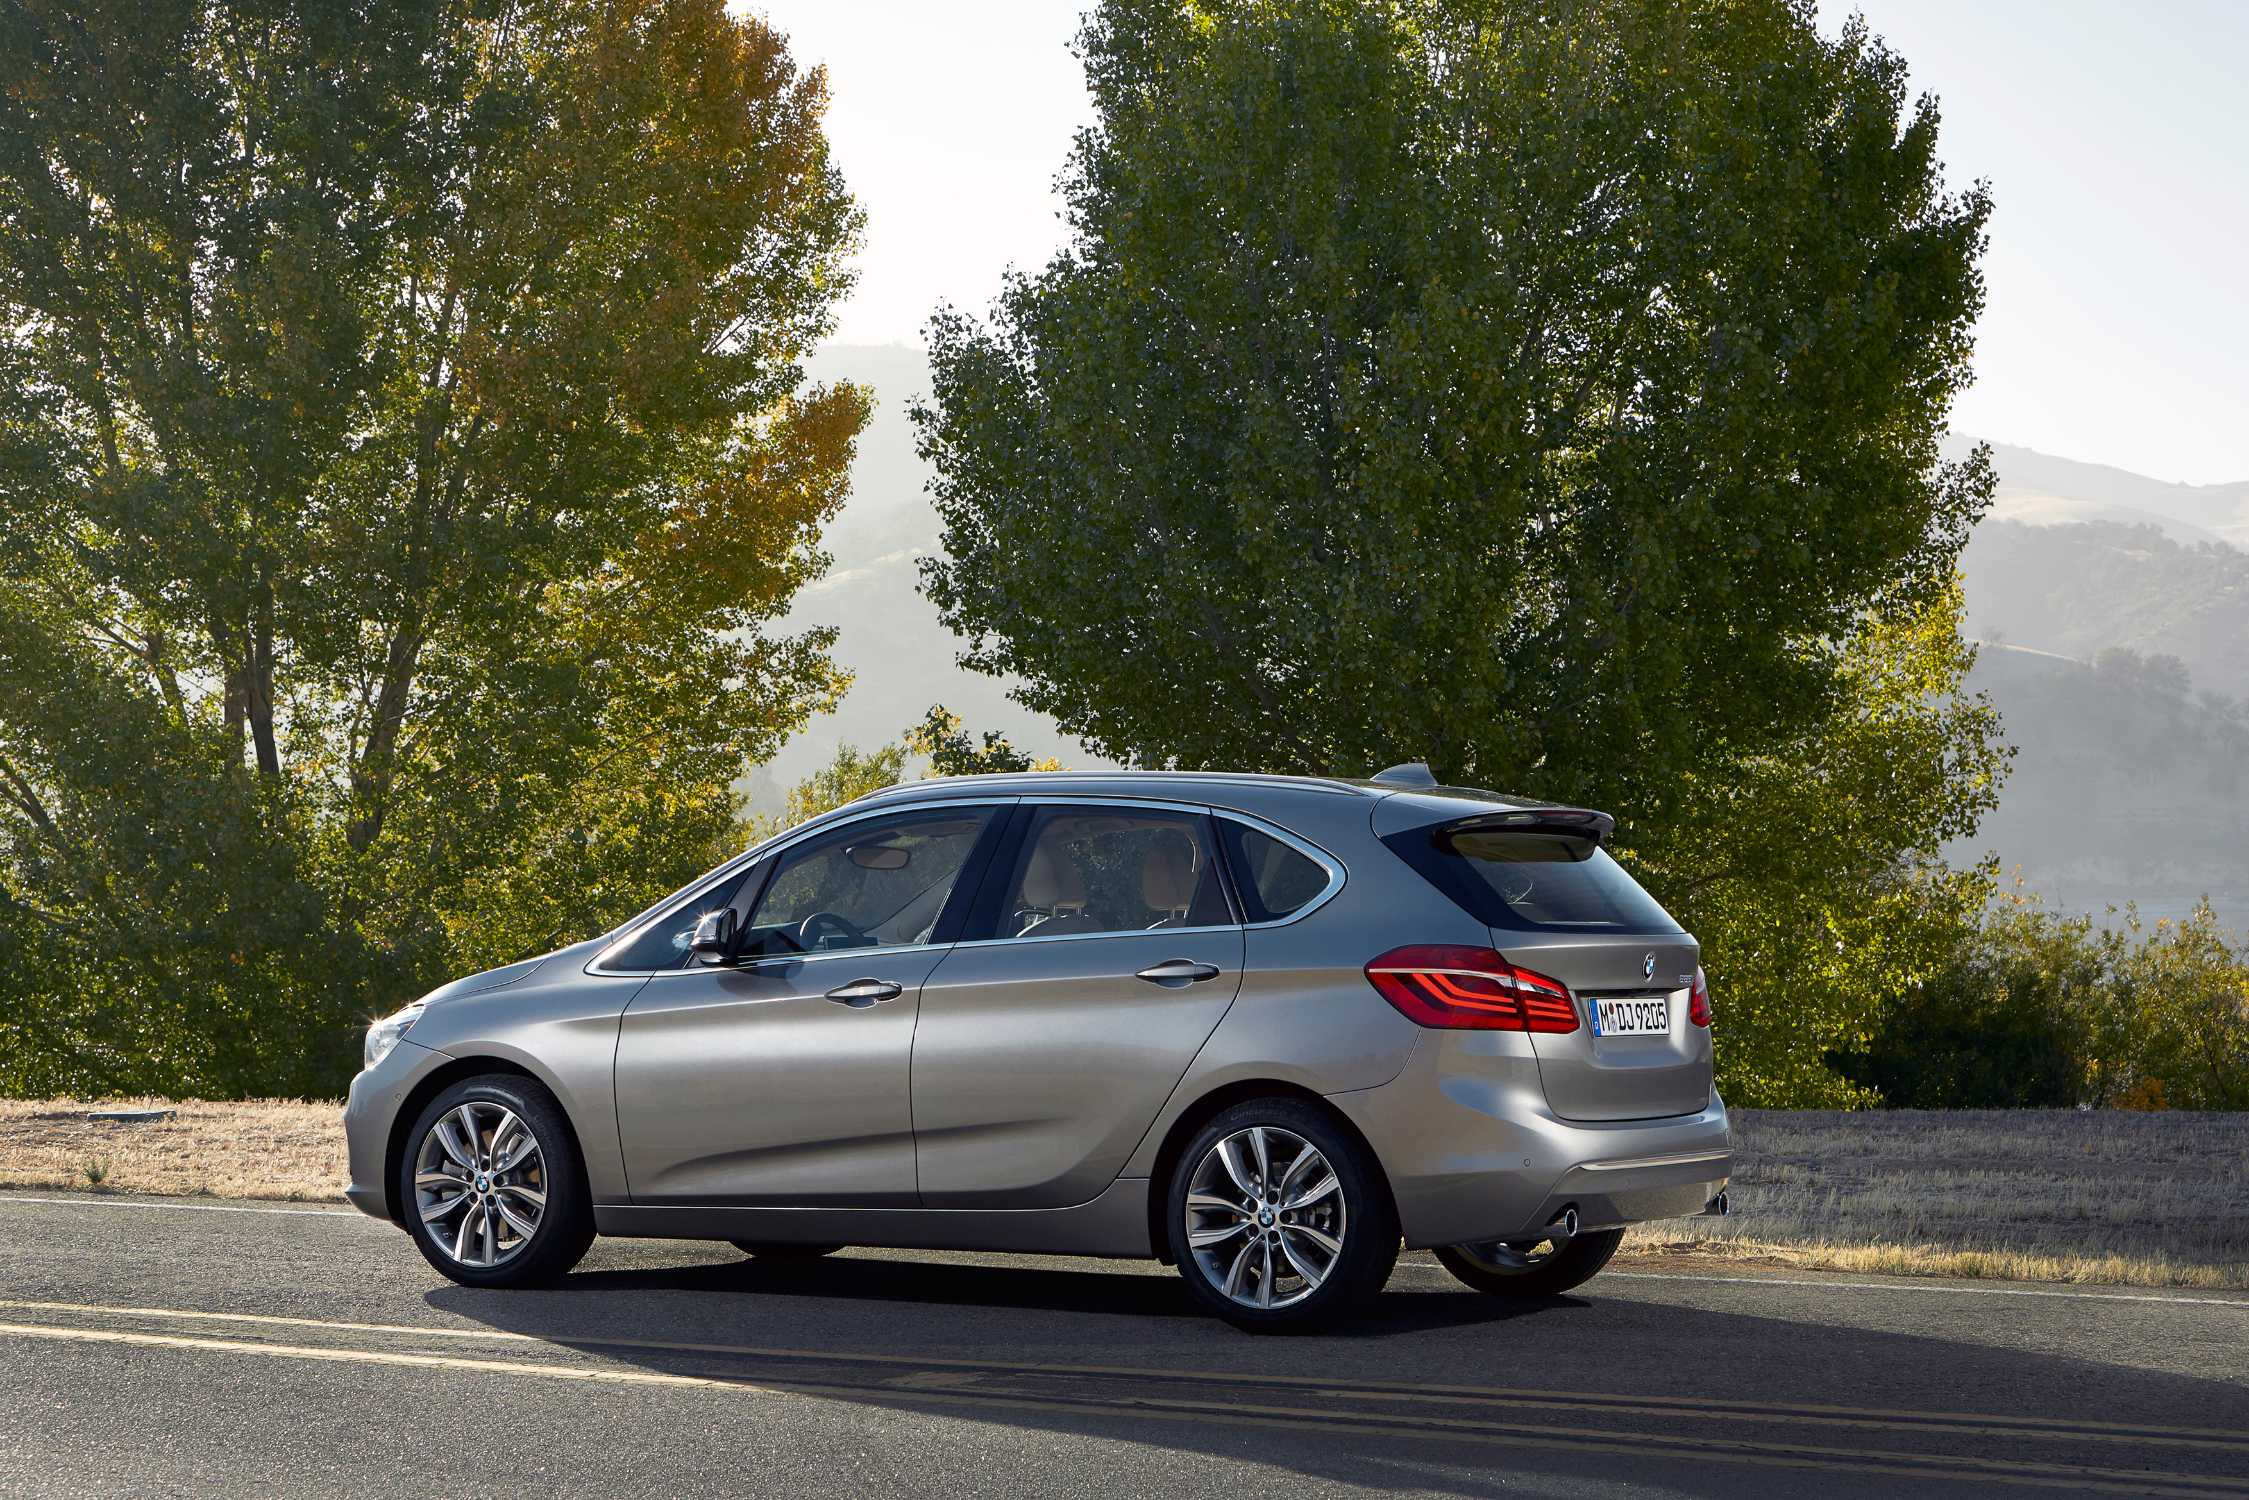 BMW 2 series Active Tourer 220i 2014 photo - 12